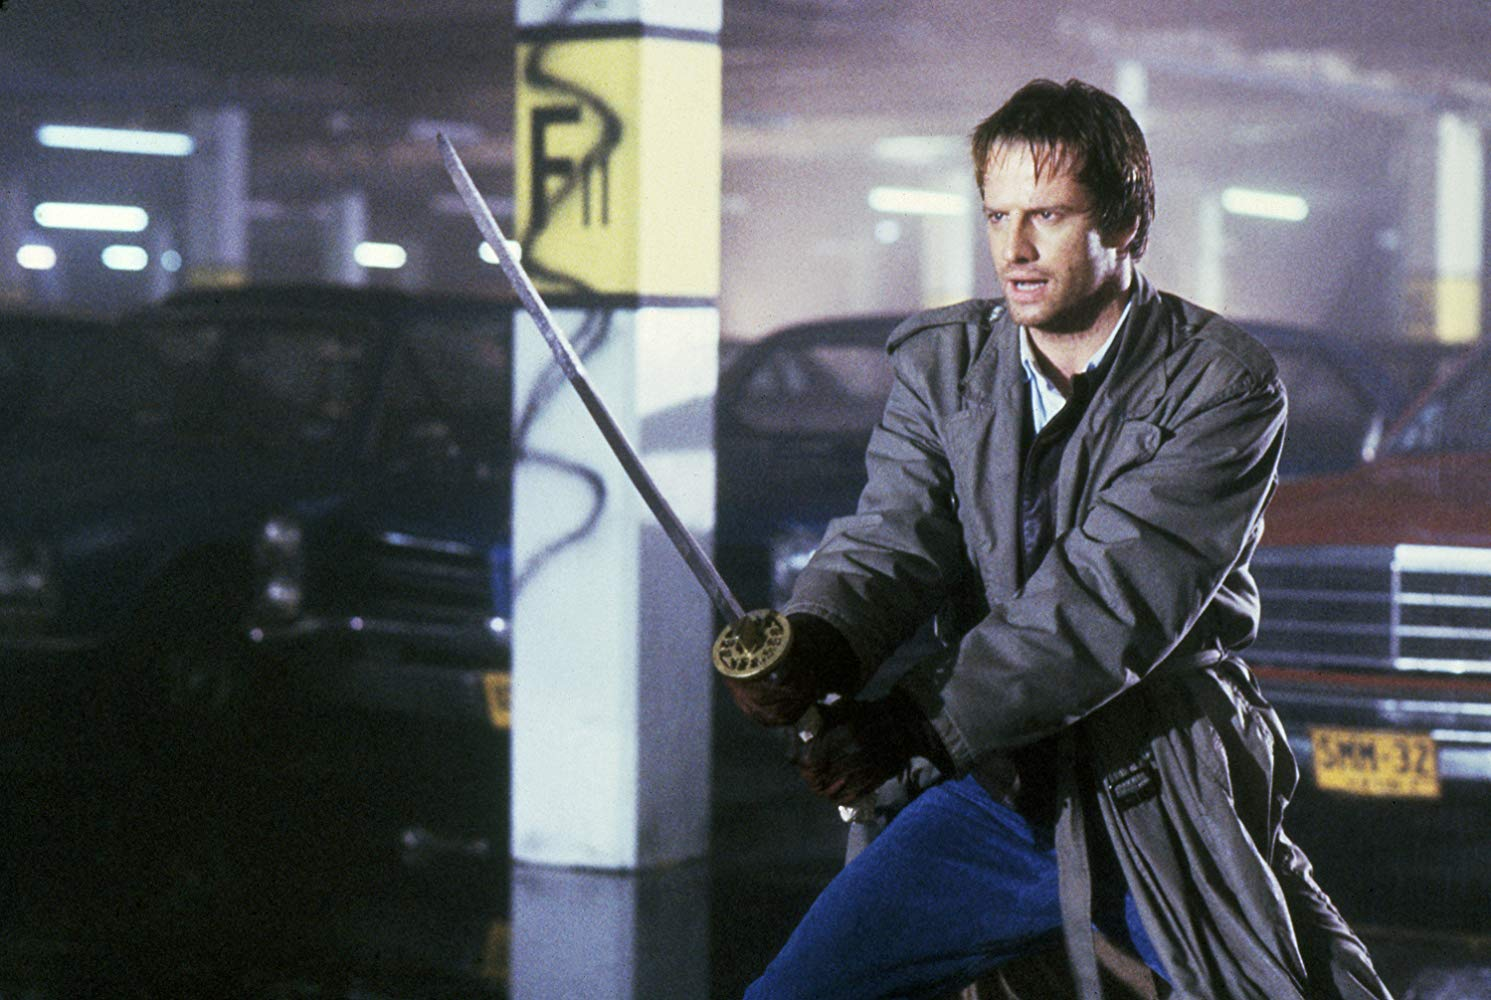 Connor McLeod (Christopher Lambert) enters a duel in a carpark building in Highlander (1986)